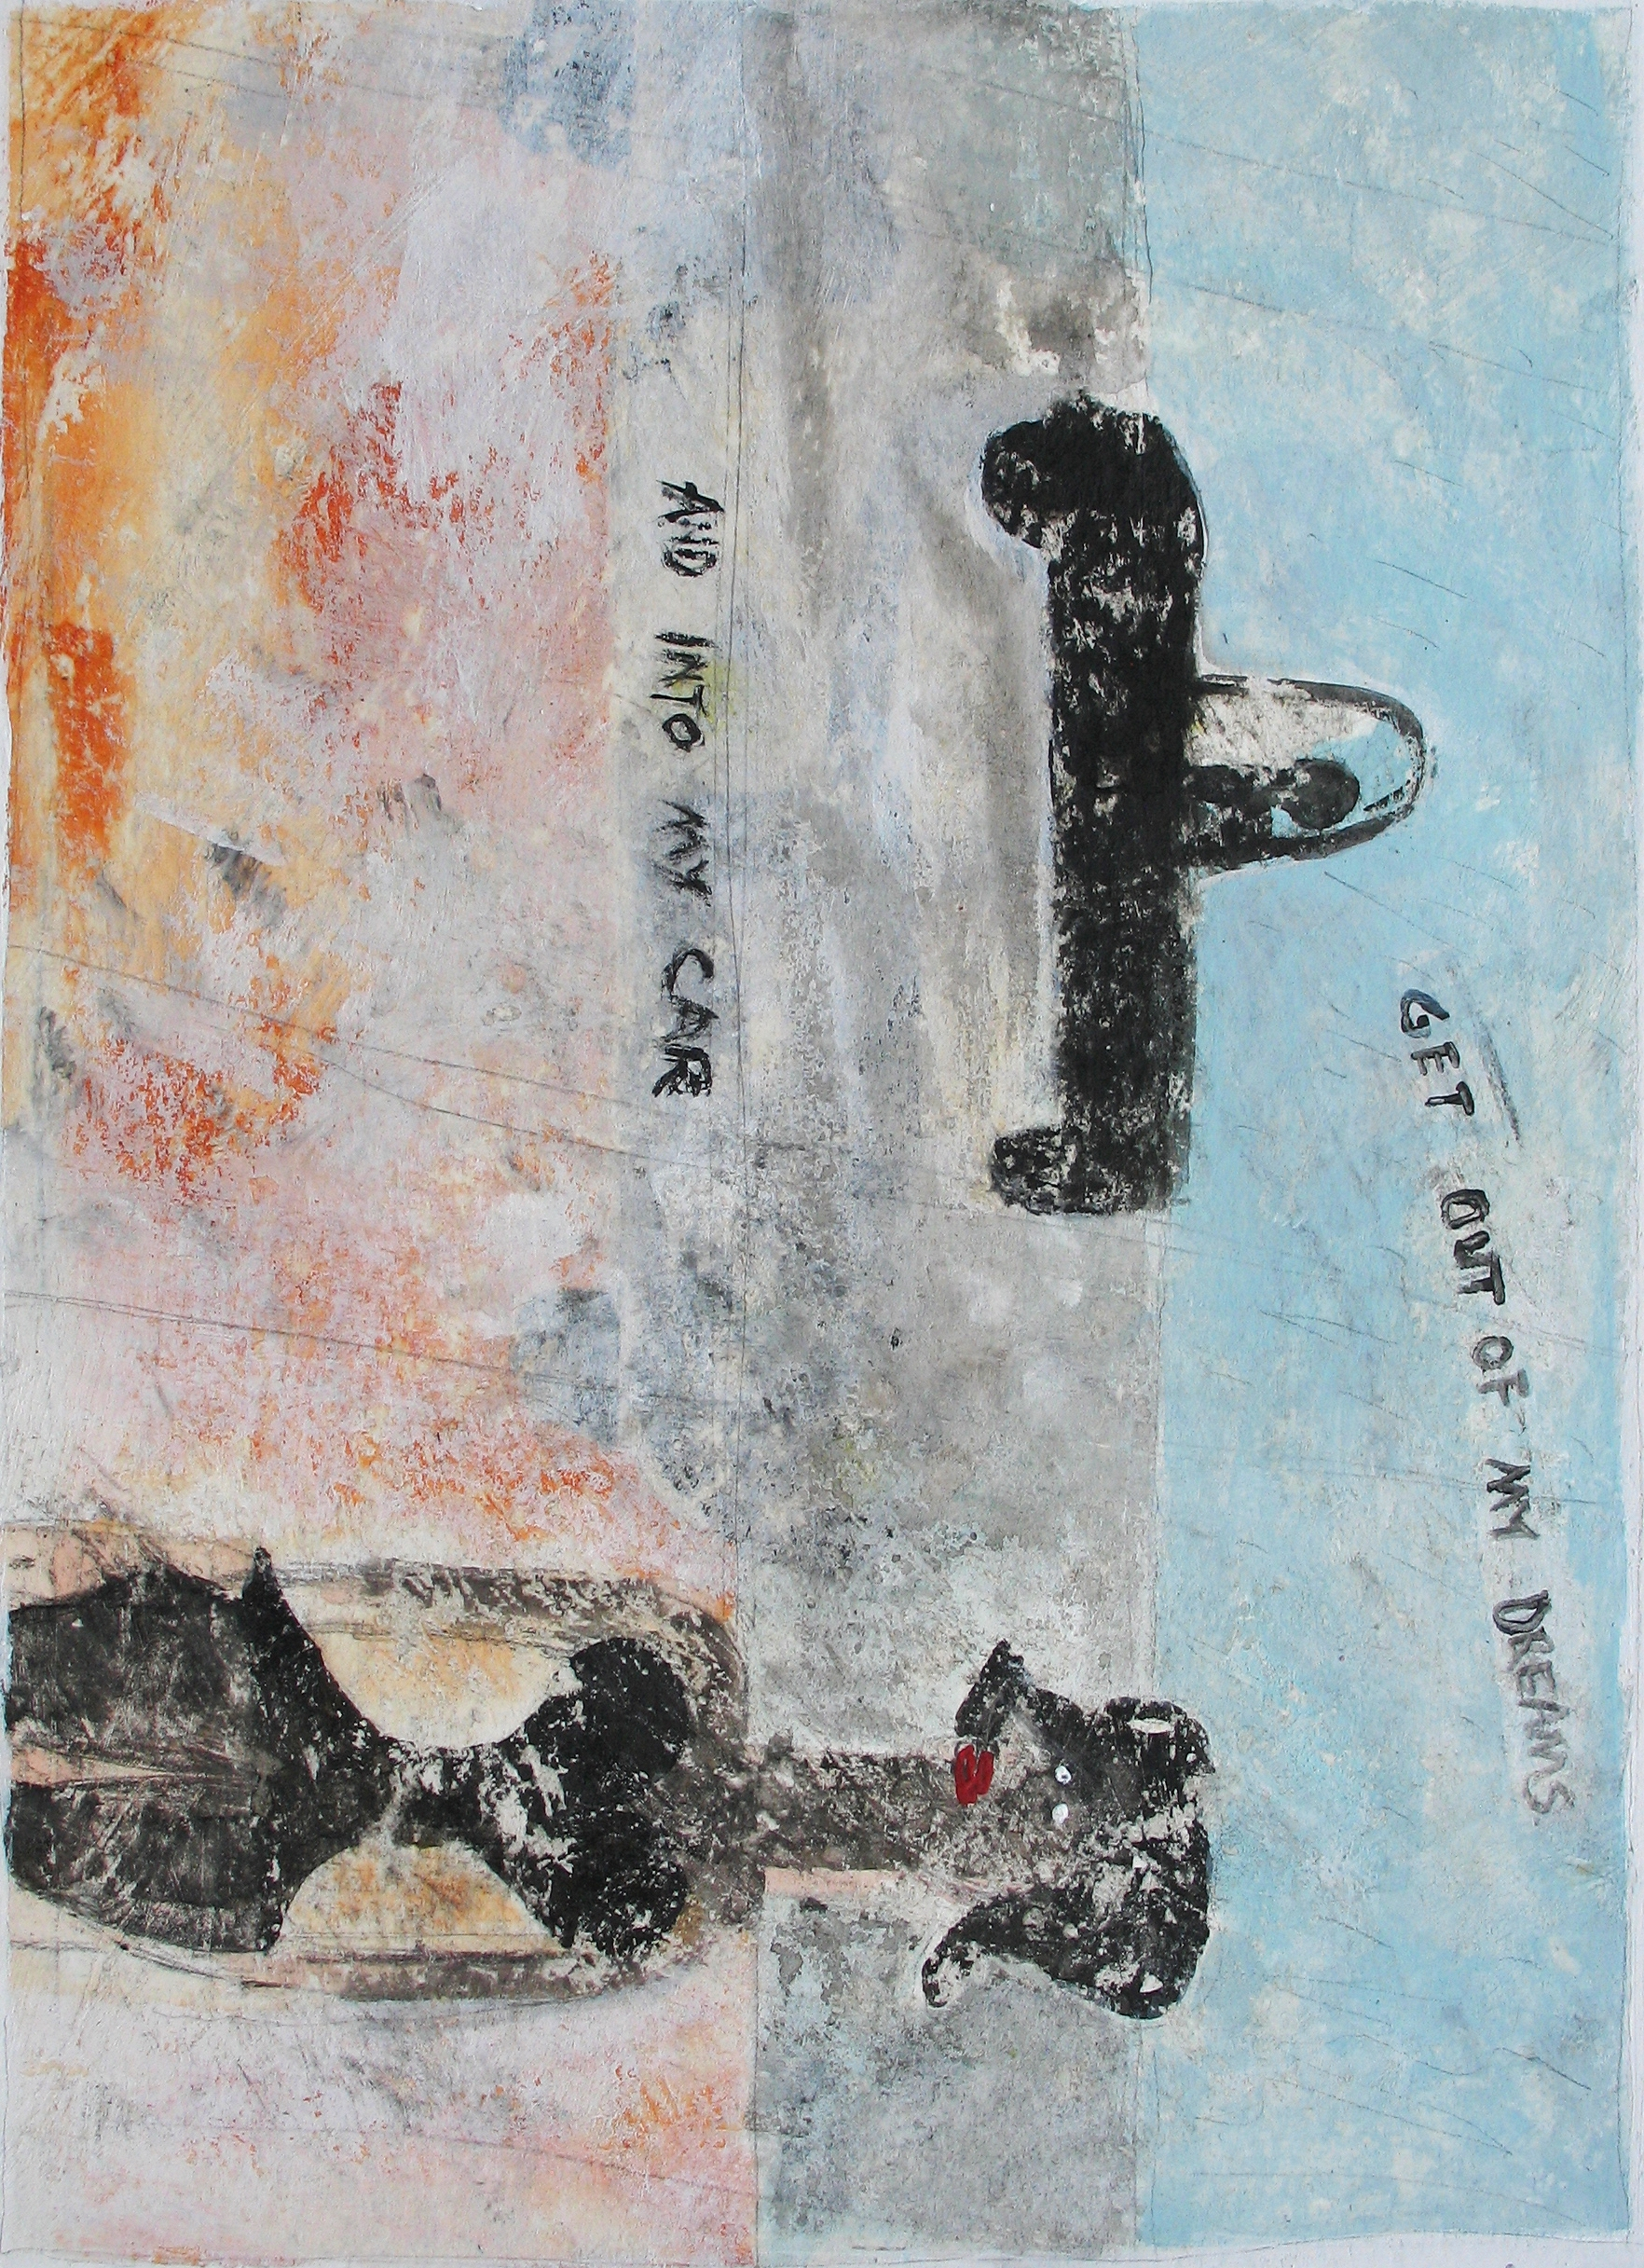 Scott bergey get out of my dreams